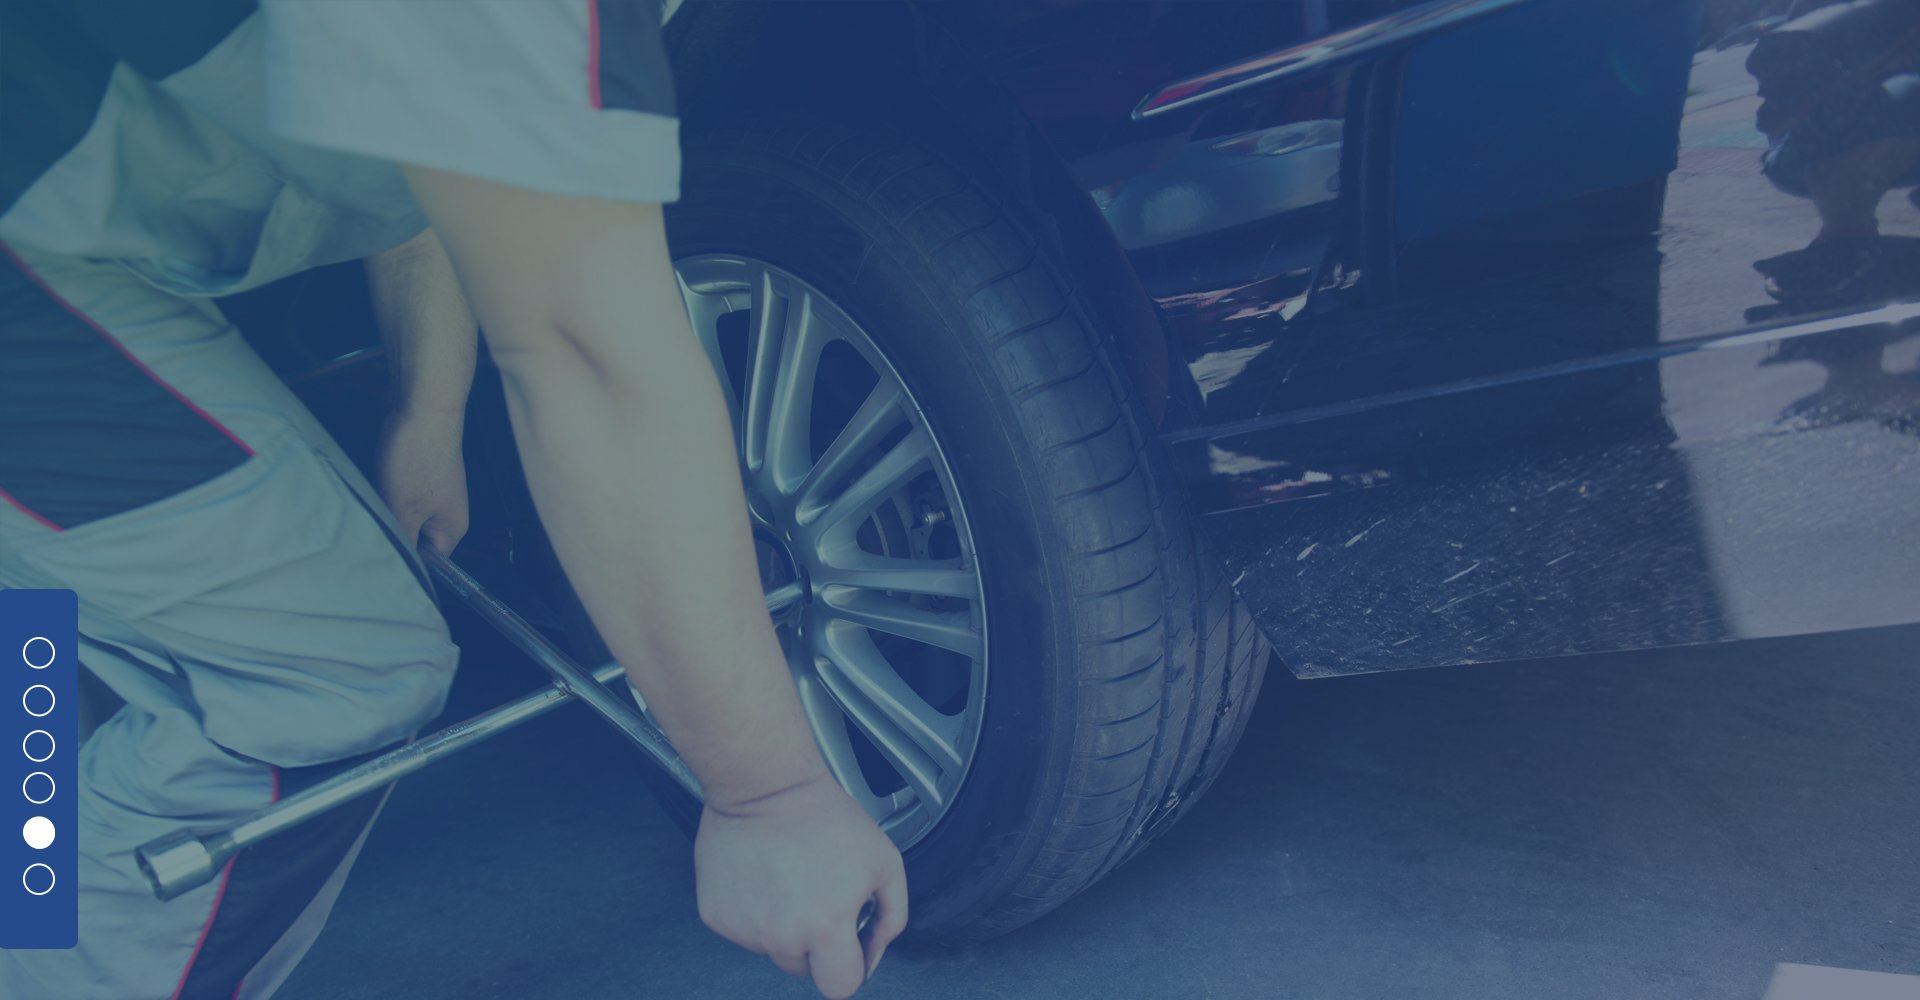 Towngate Tyres services